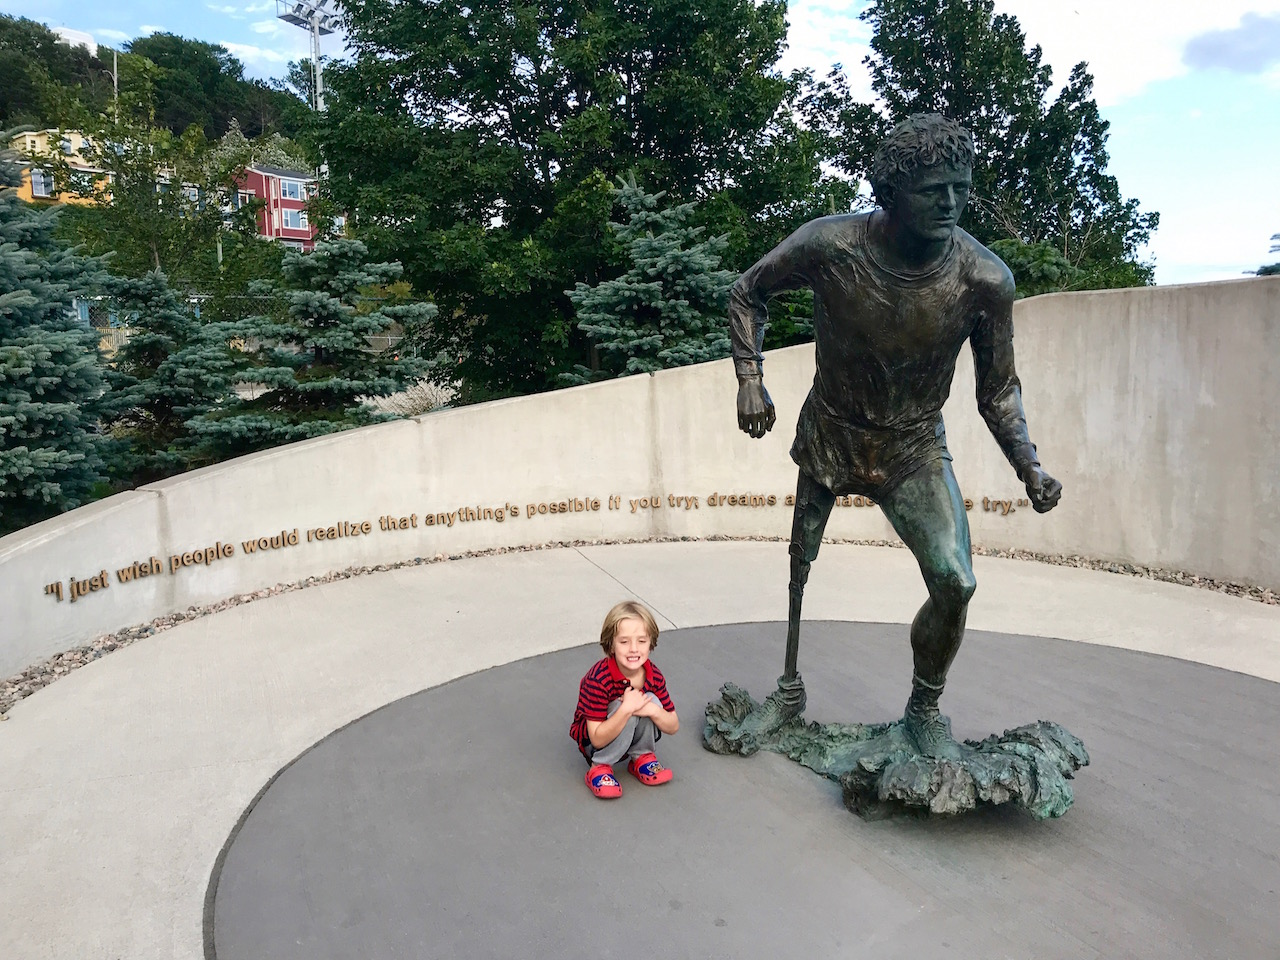 Terry Fox statue with Charlie